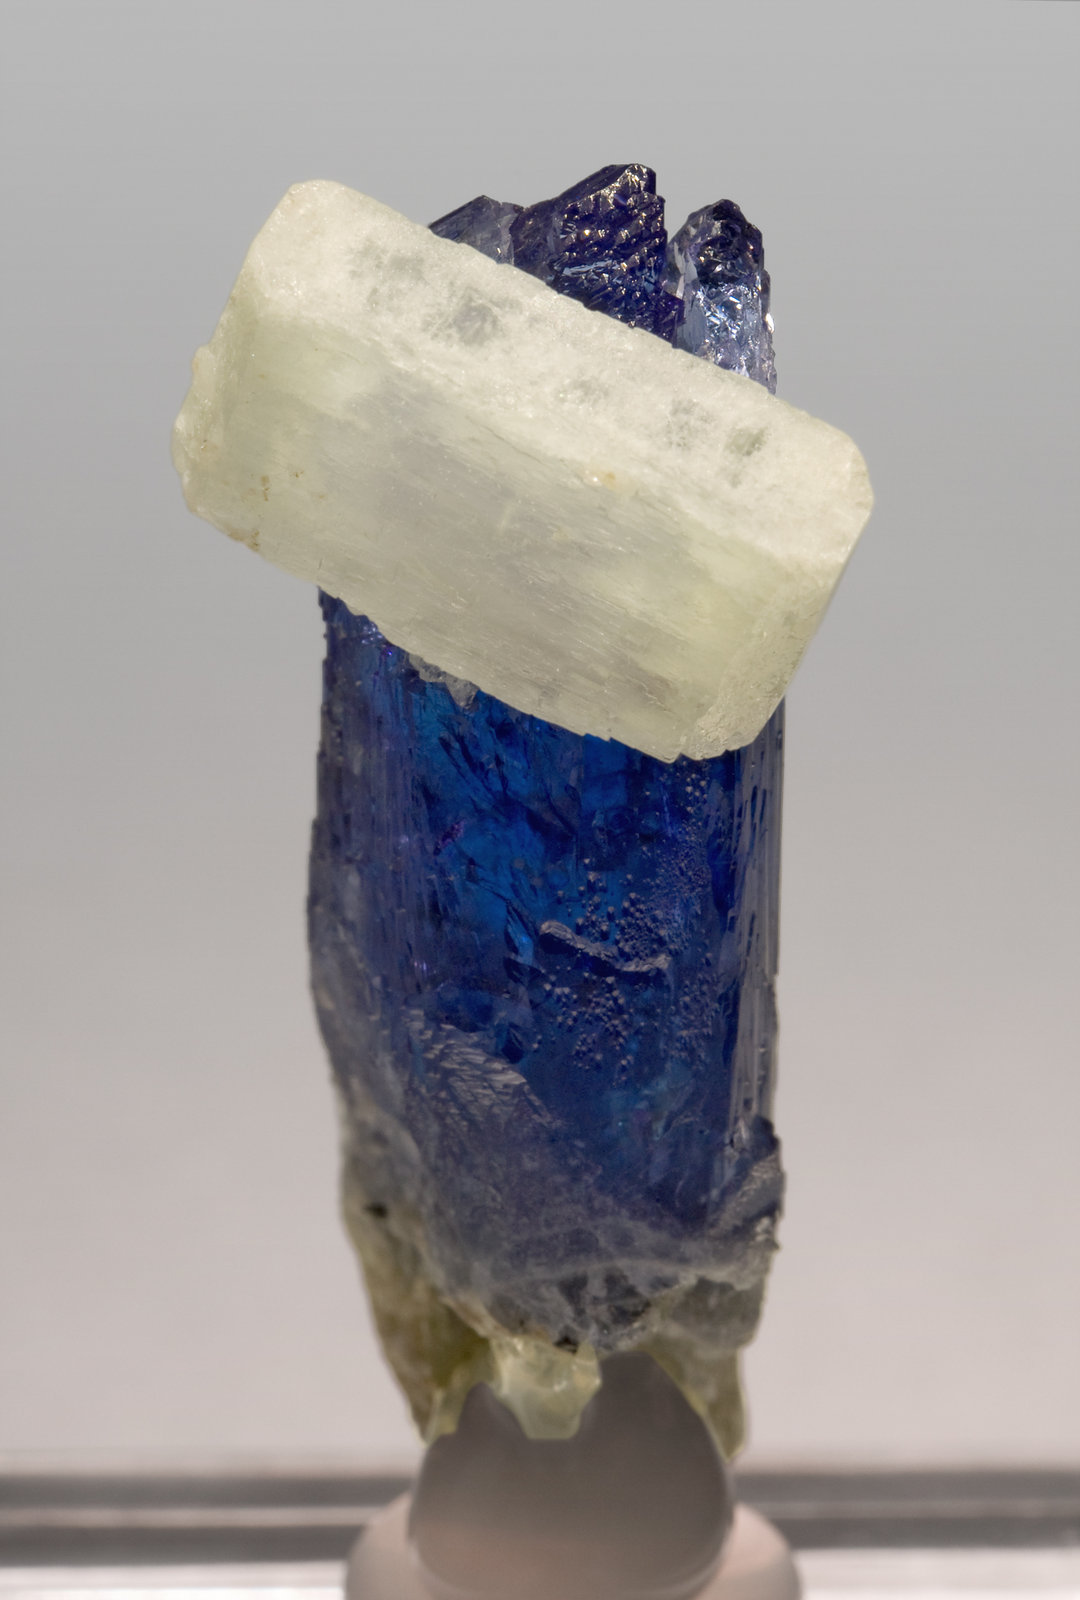 Zoisite (Tanzanite) with Prehnite